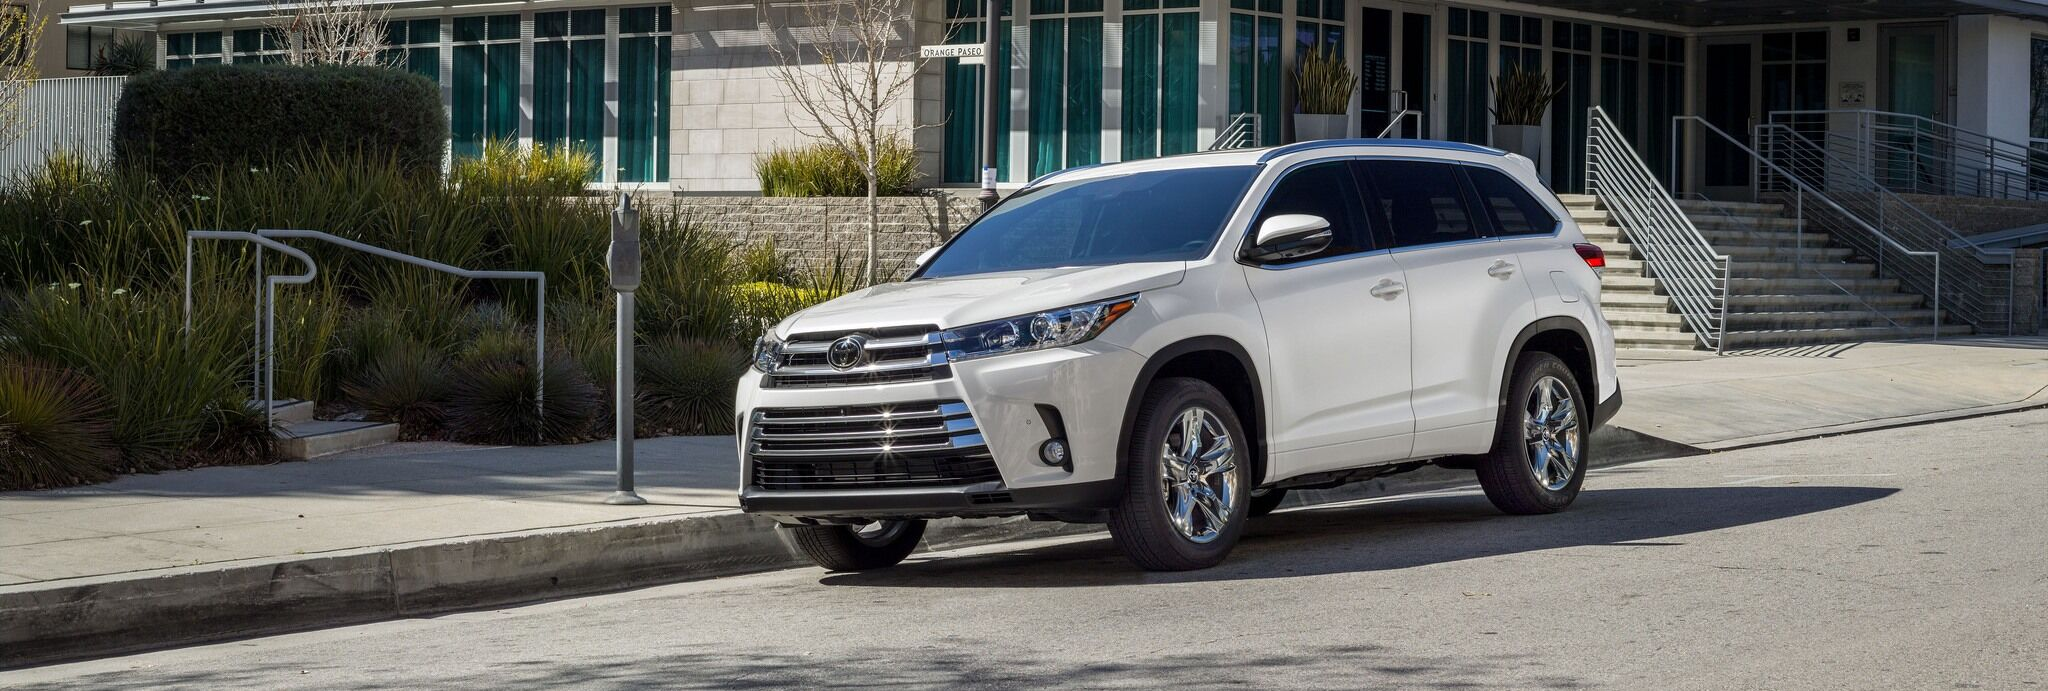 2018 Toyota Highlander Harlingen